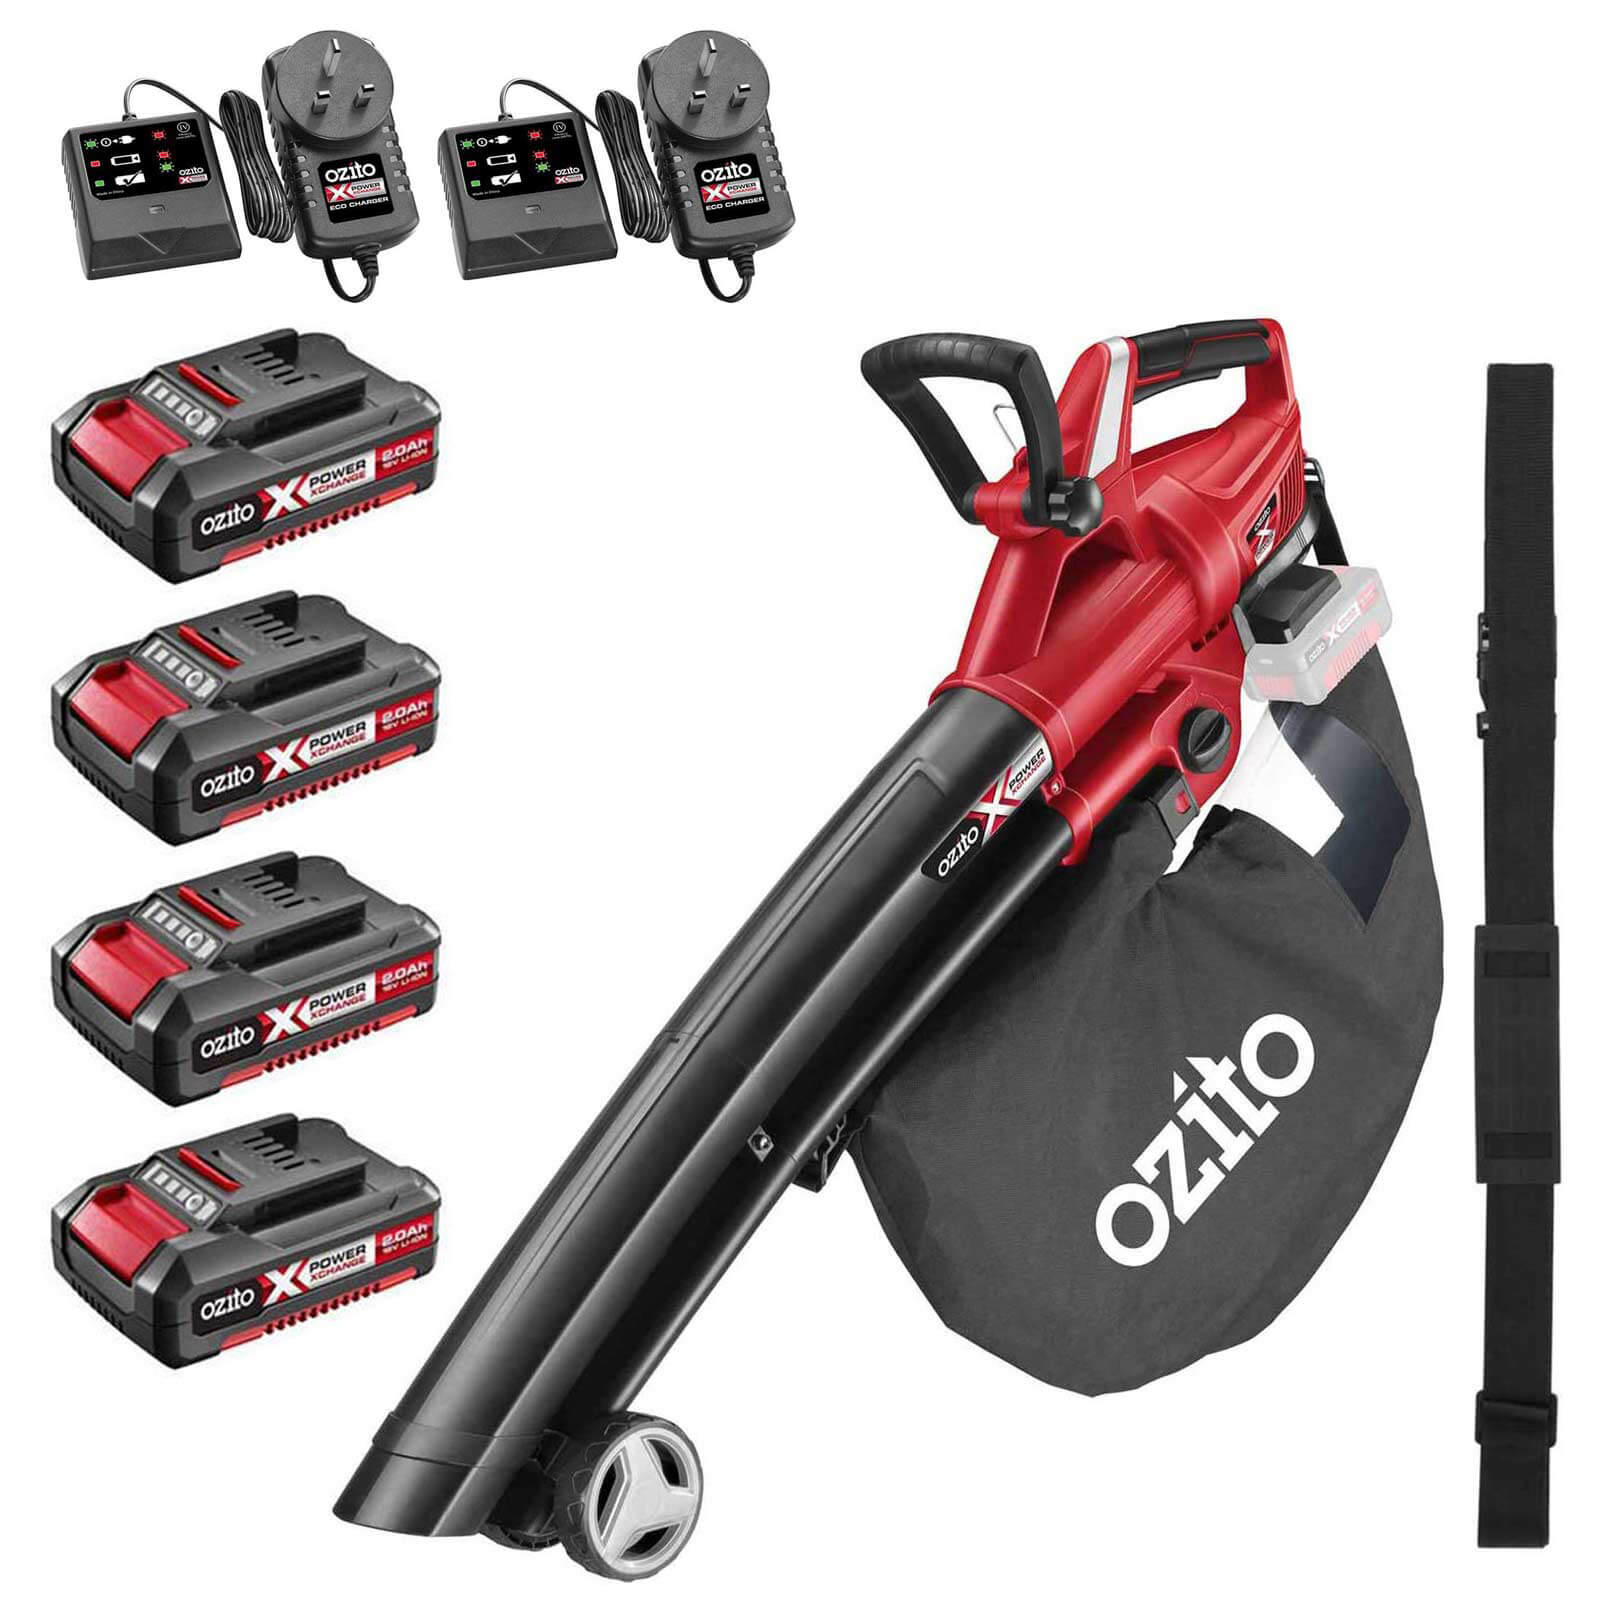 Ozito PXCBLVS 36v Cordless Brushless Garden Vacuum and Leaf Blower (Uses 2 x 18v) 4 x 2ah Li-ion Twin Battery Charger